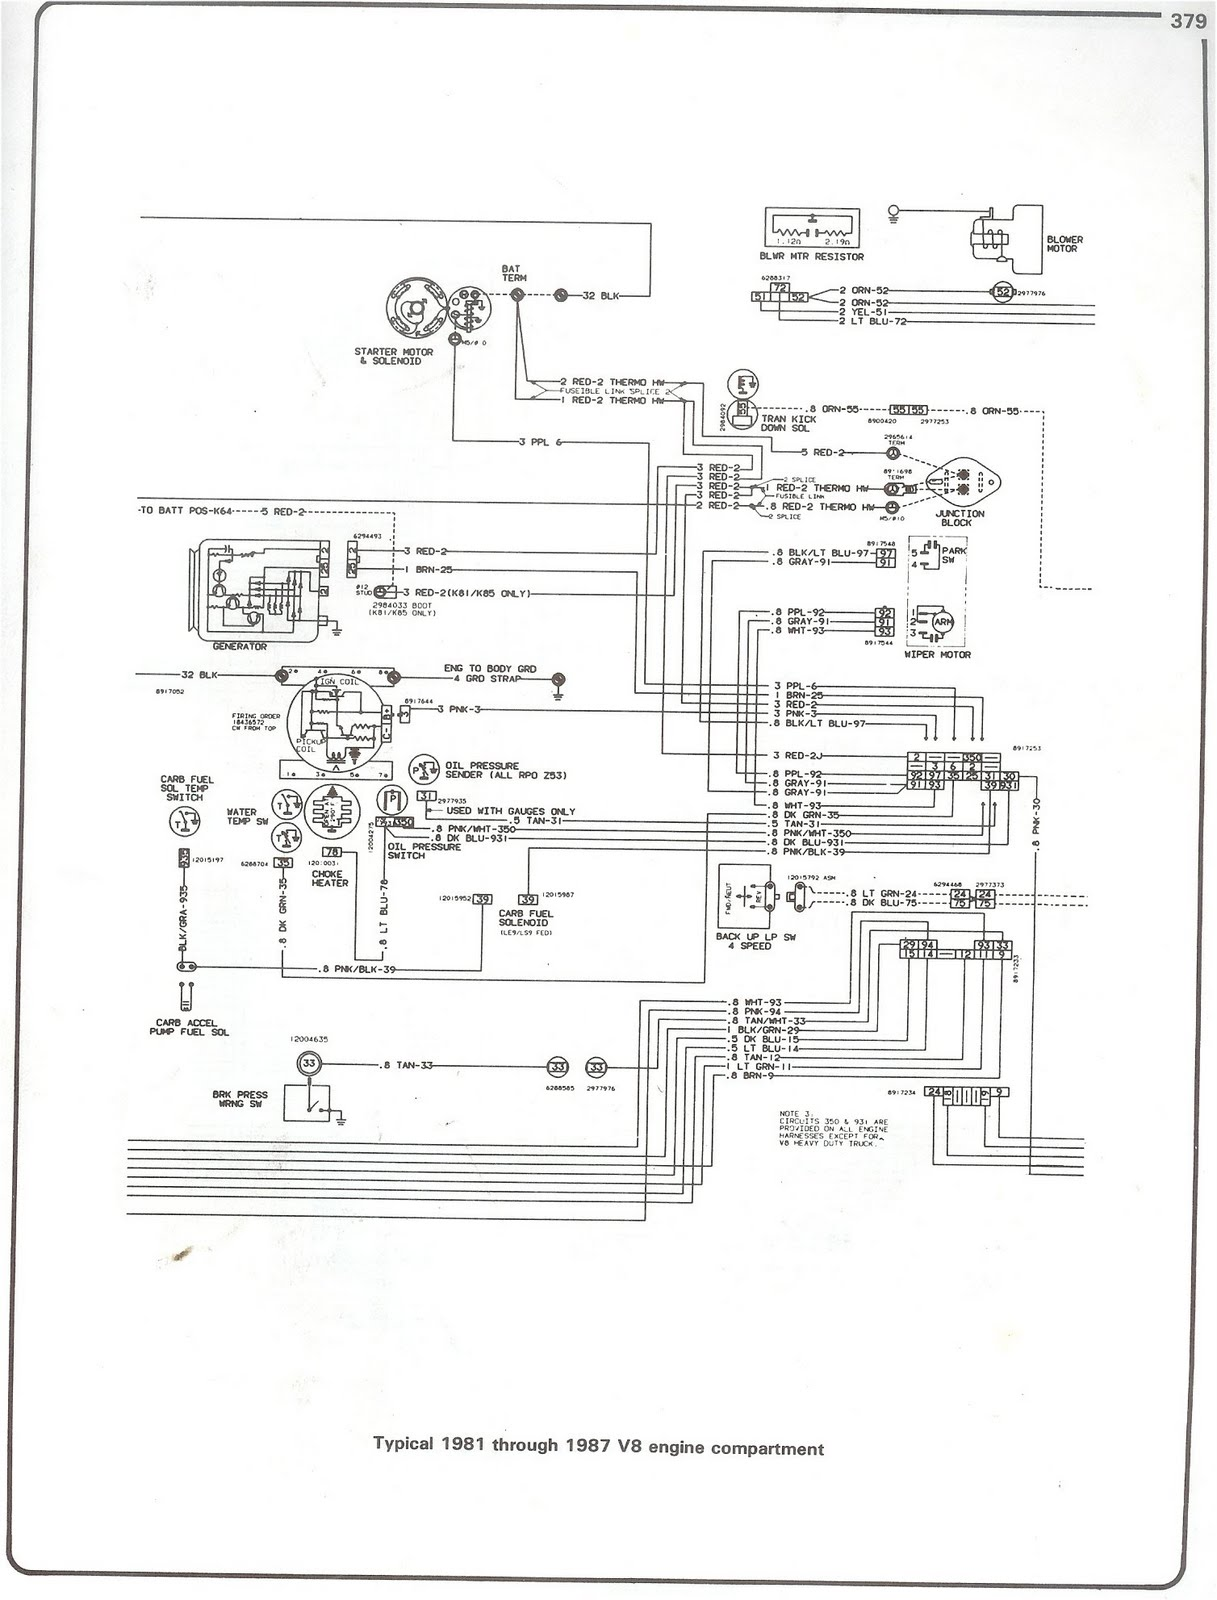 86 Chevy Fuse Box | Wiring Diagram on box chevrolet, box chevey com, box vans, box nova, box tahoe, box suburban, box window treatments, box chevelle, box cutlass, box monte carlo, box corvette, box crown vic, box camper, box malibu,